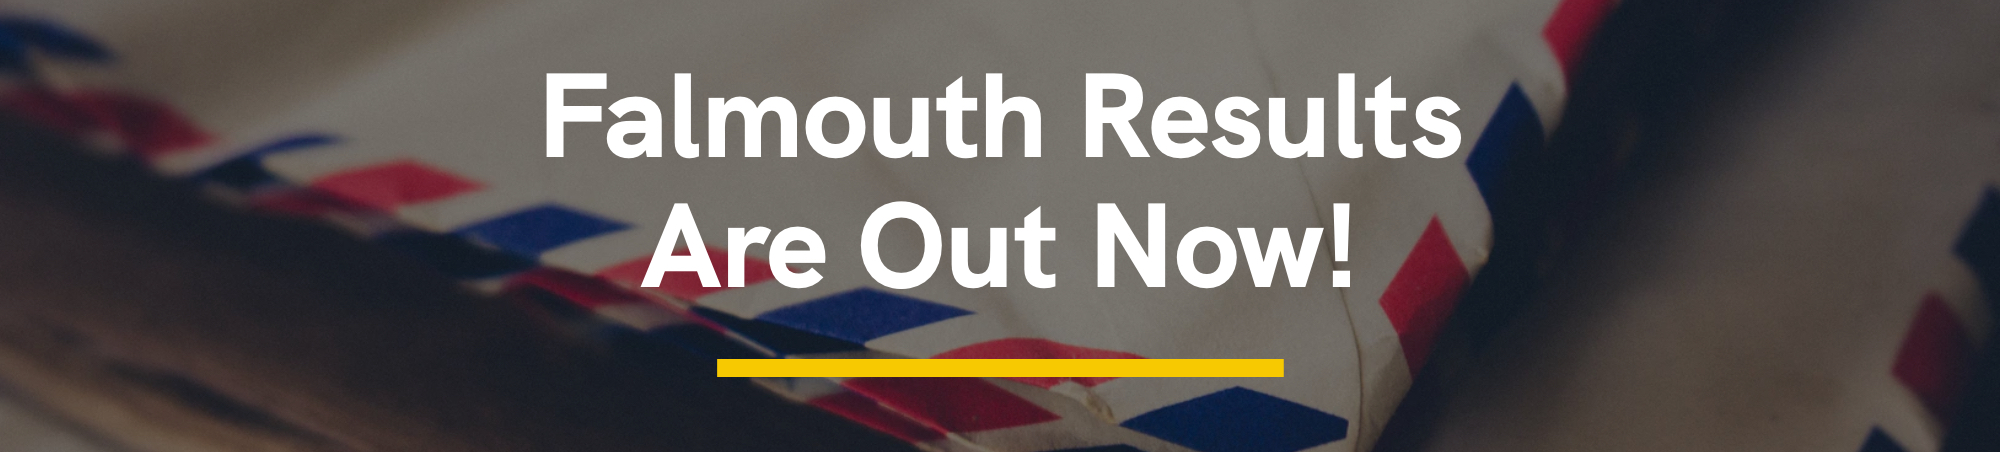 Falmouth Results Qre Out Now!